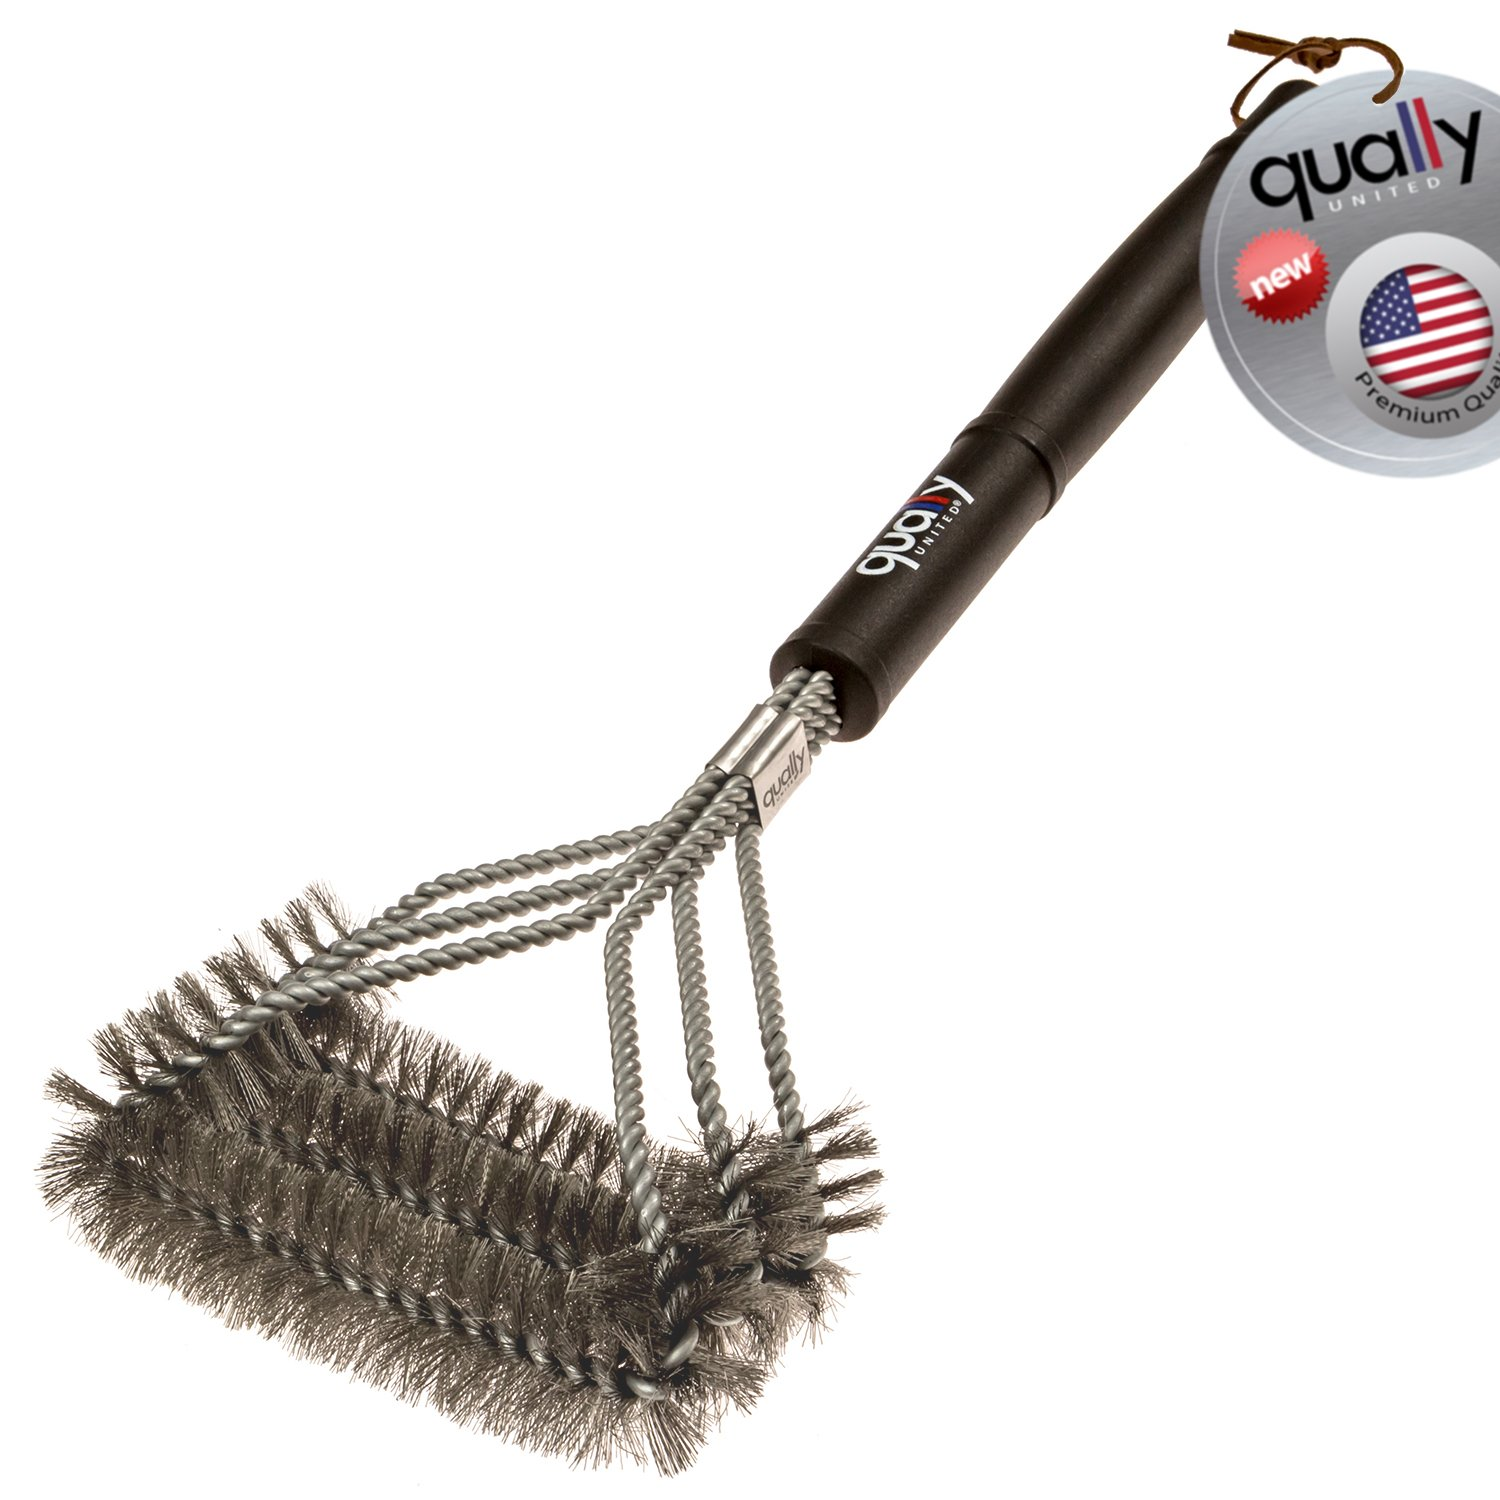 "Qually United® - the Best 2016 Edition 17"" BBQ Grill Brush with 3 Stainless Steel Brushes in 1 - Universal and Perfectly Angled this Barbecue Grill Brush is a Must Have Tool for All Barbecue Lovers"